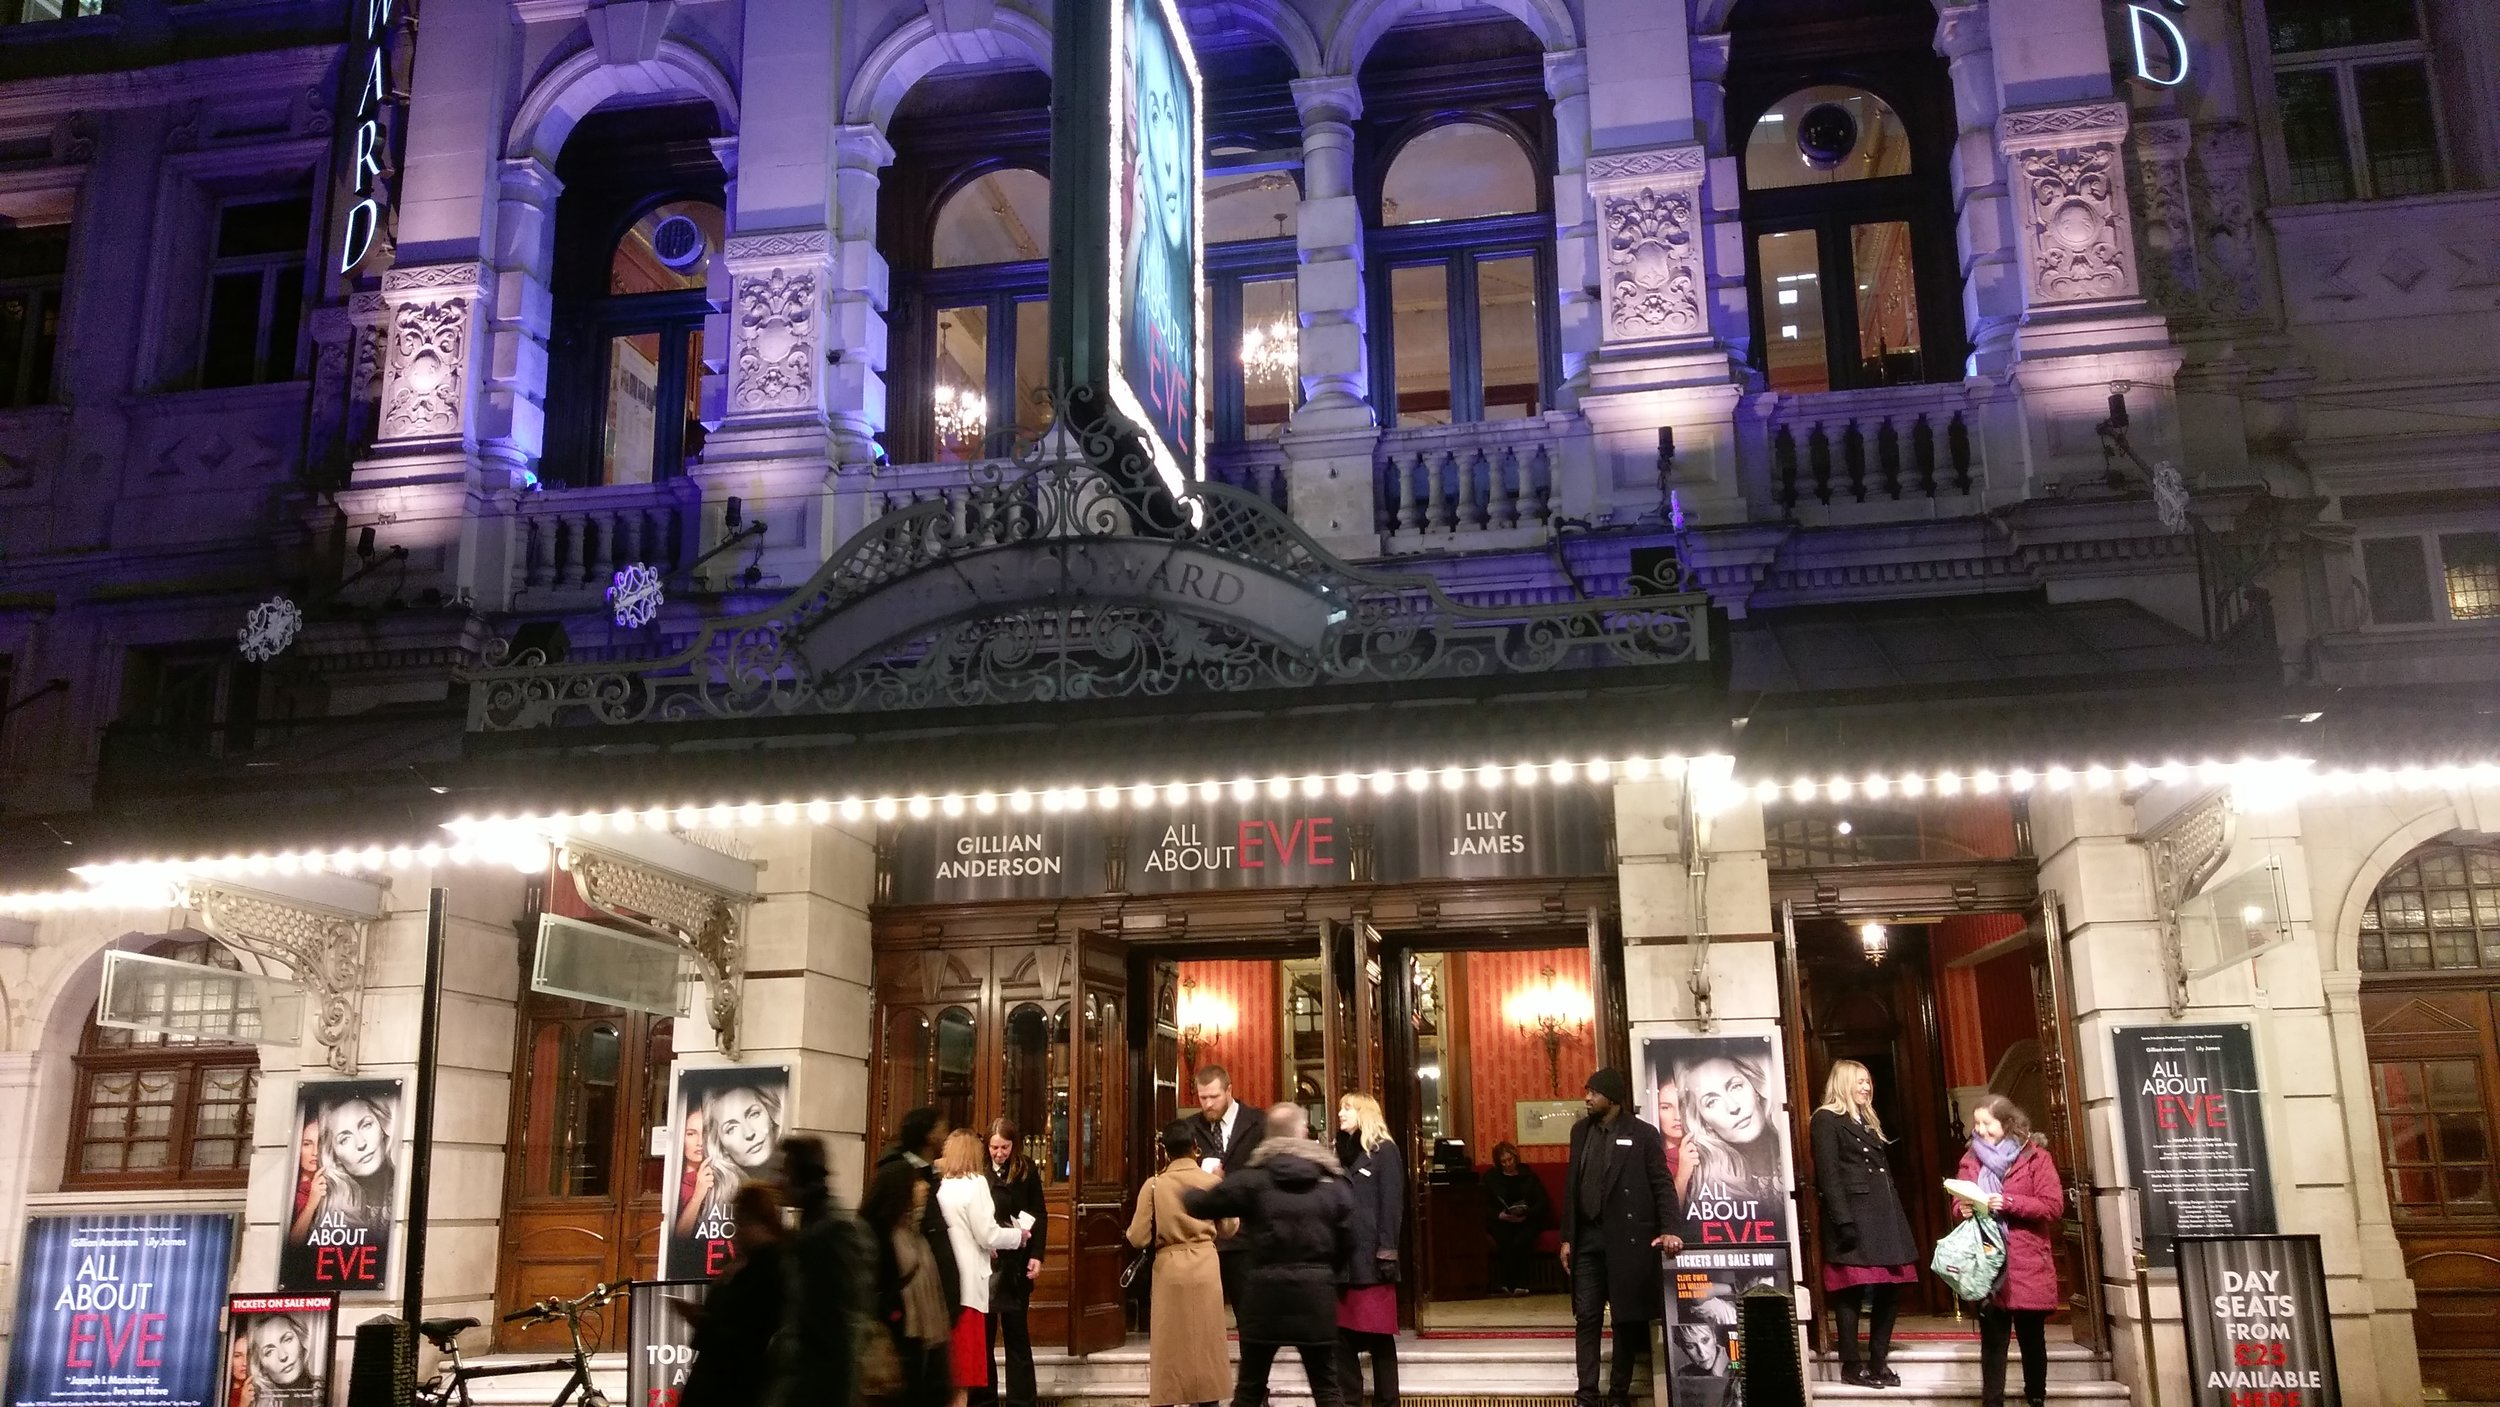 Noel Coward Theatre - visited 13/02/2019